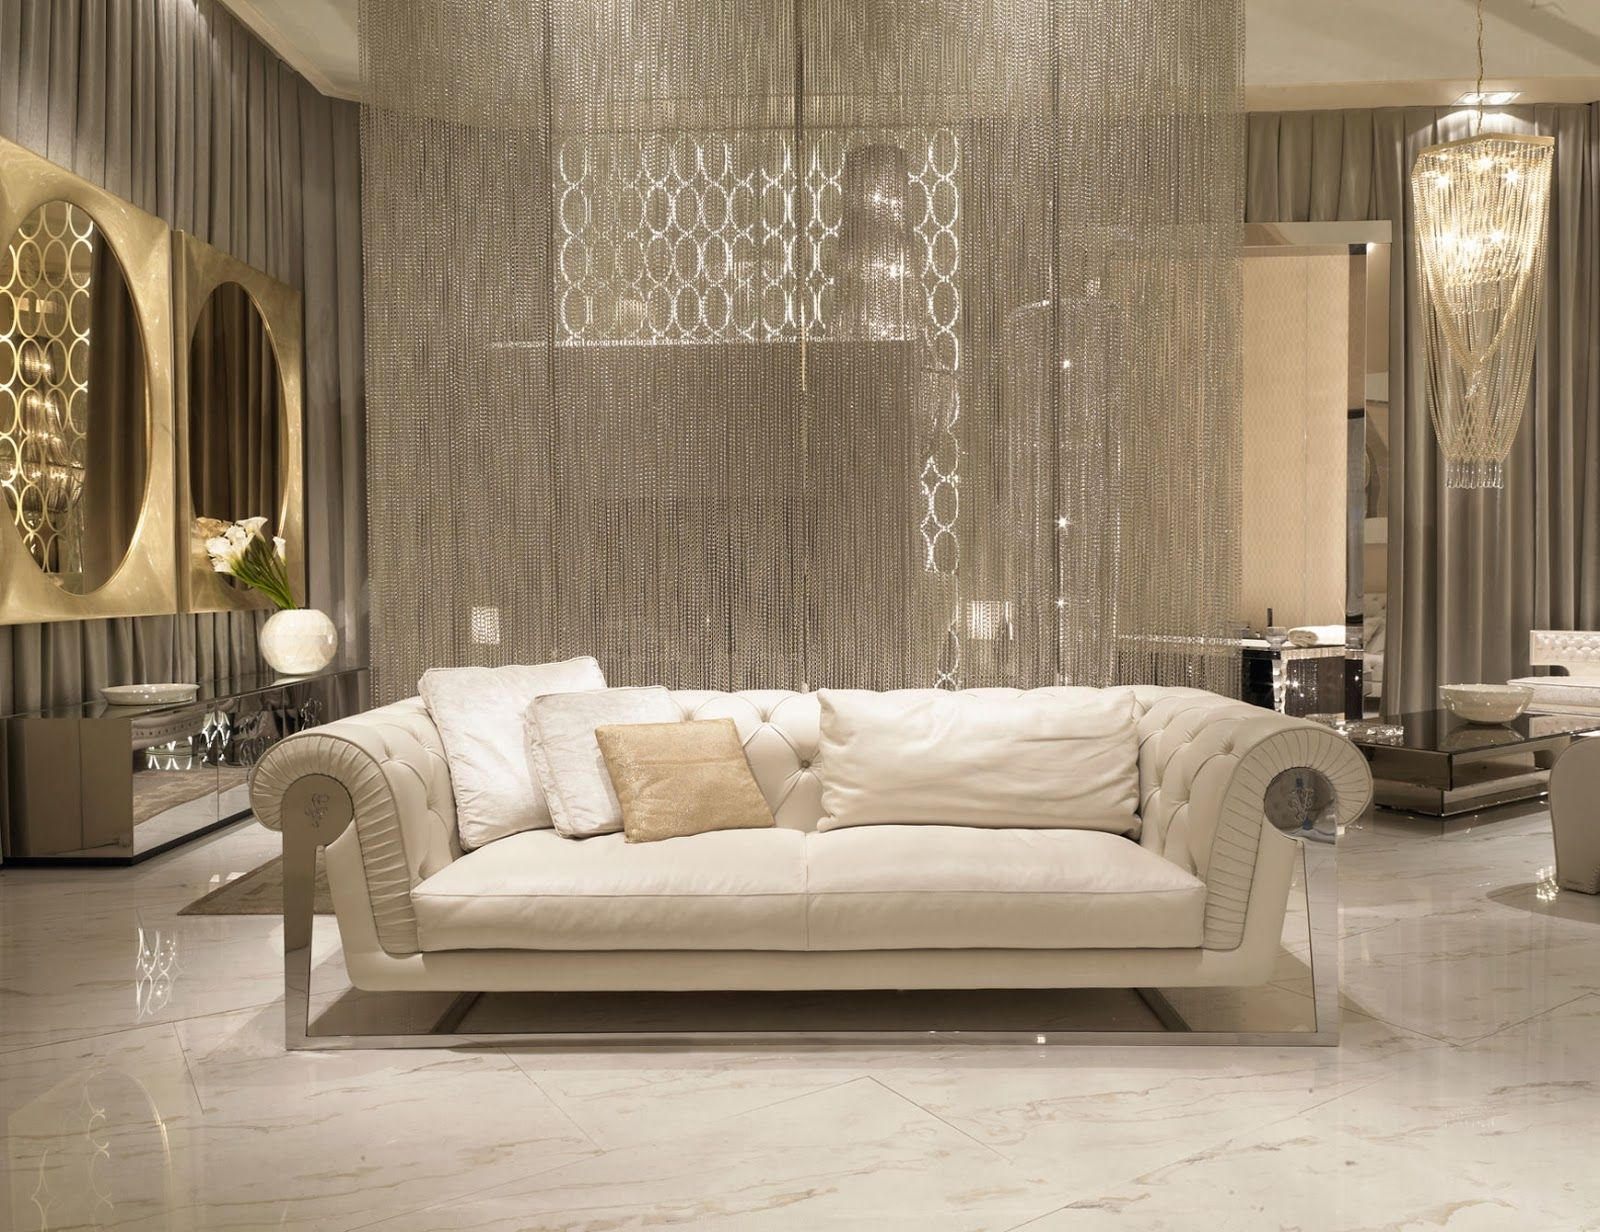 Italian home interior design with white marble floor  naturalstone